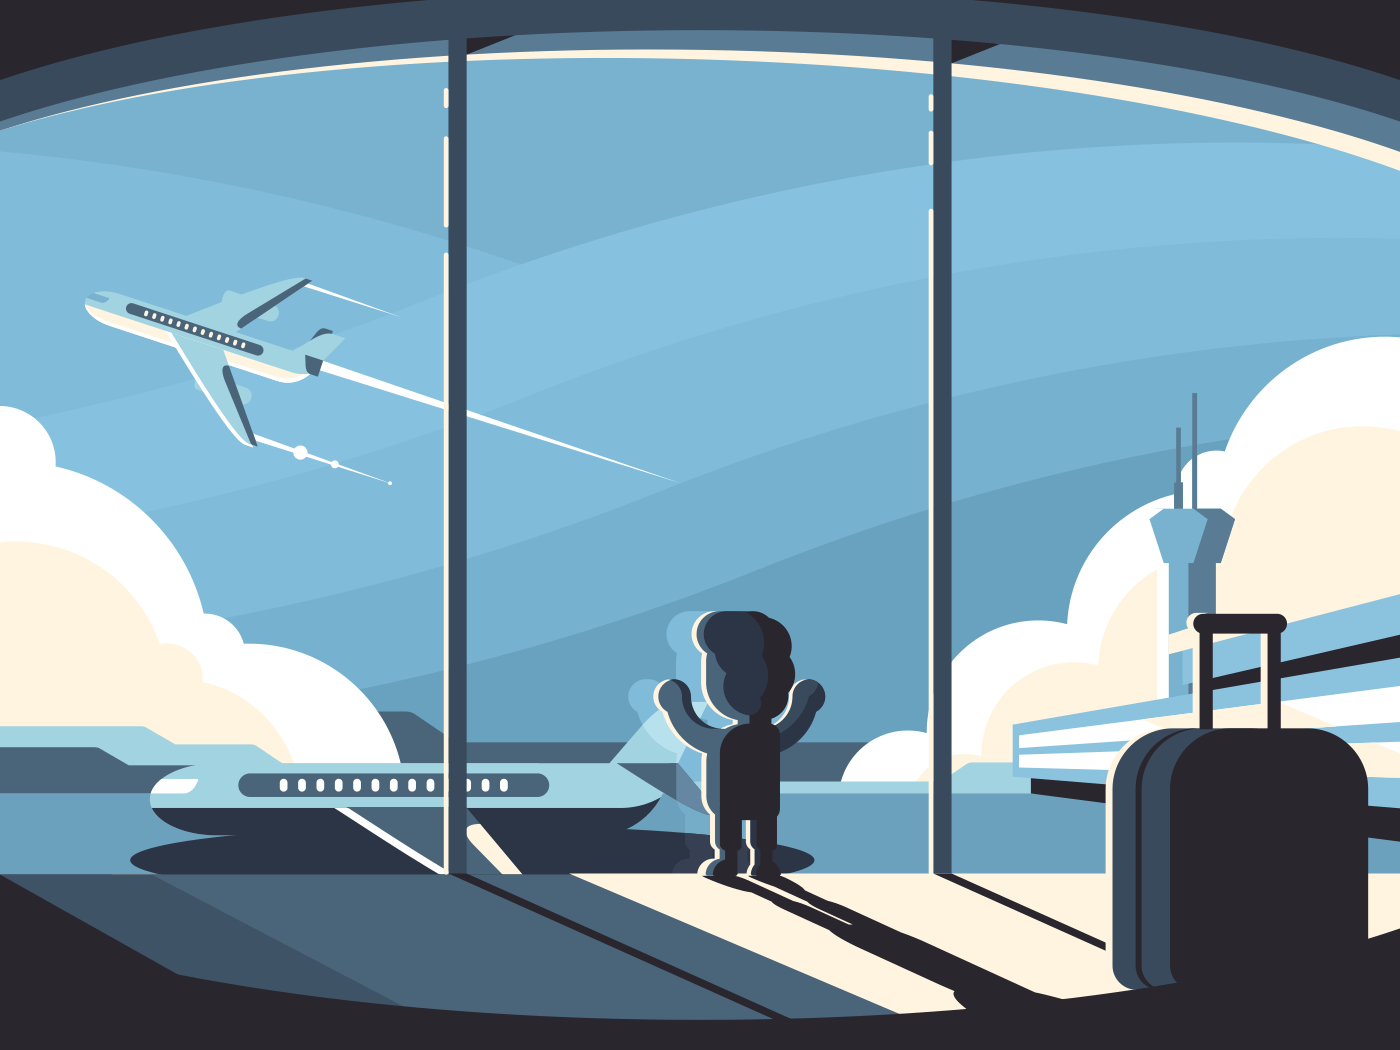 Little boy in airport terminal illustration